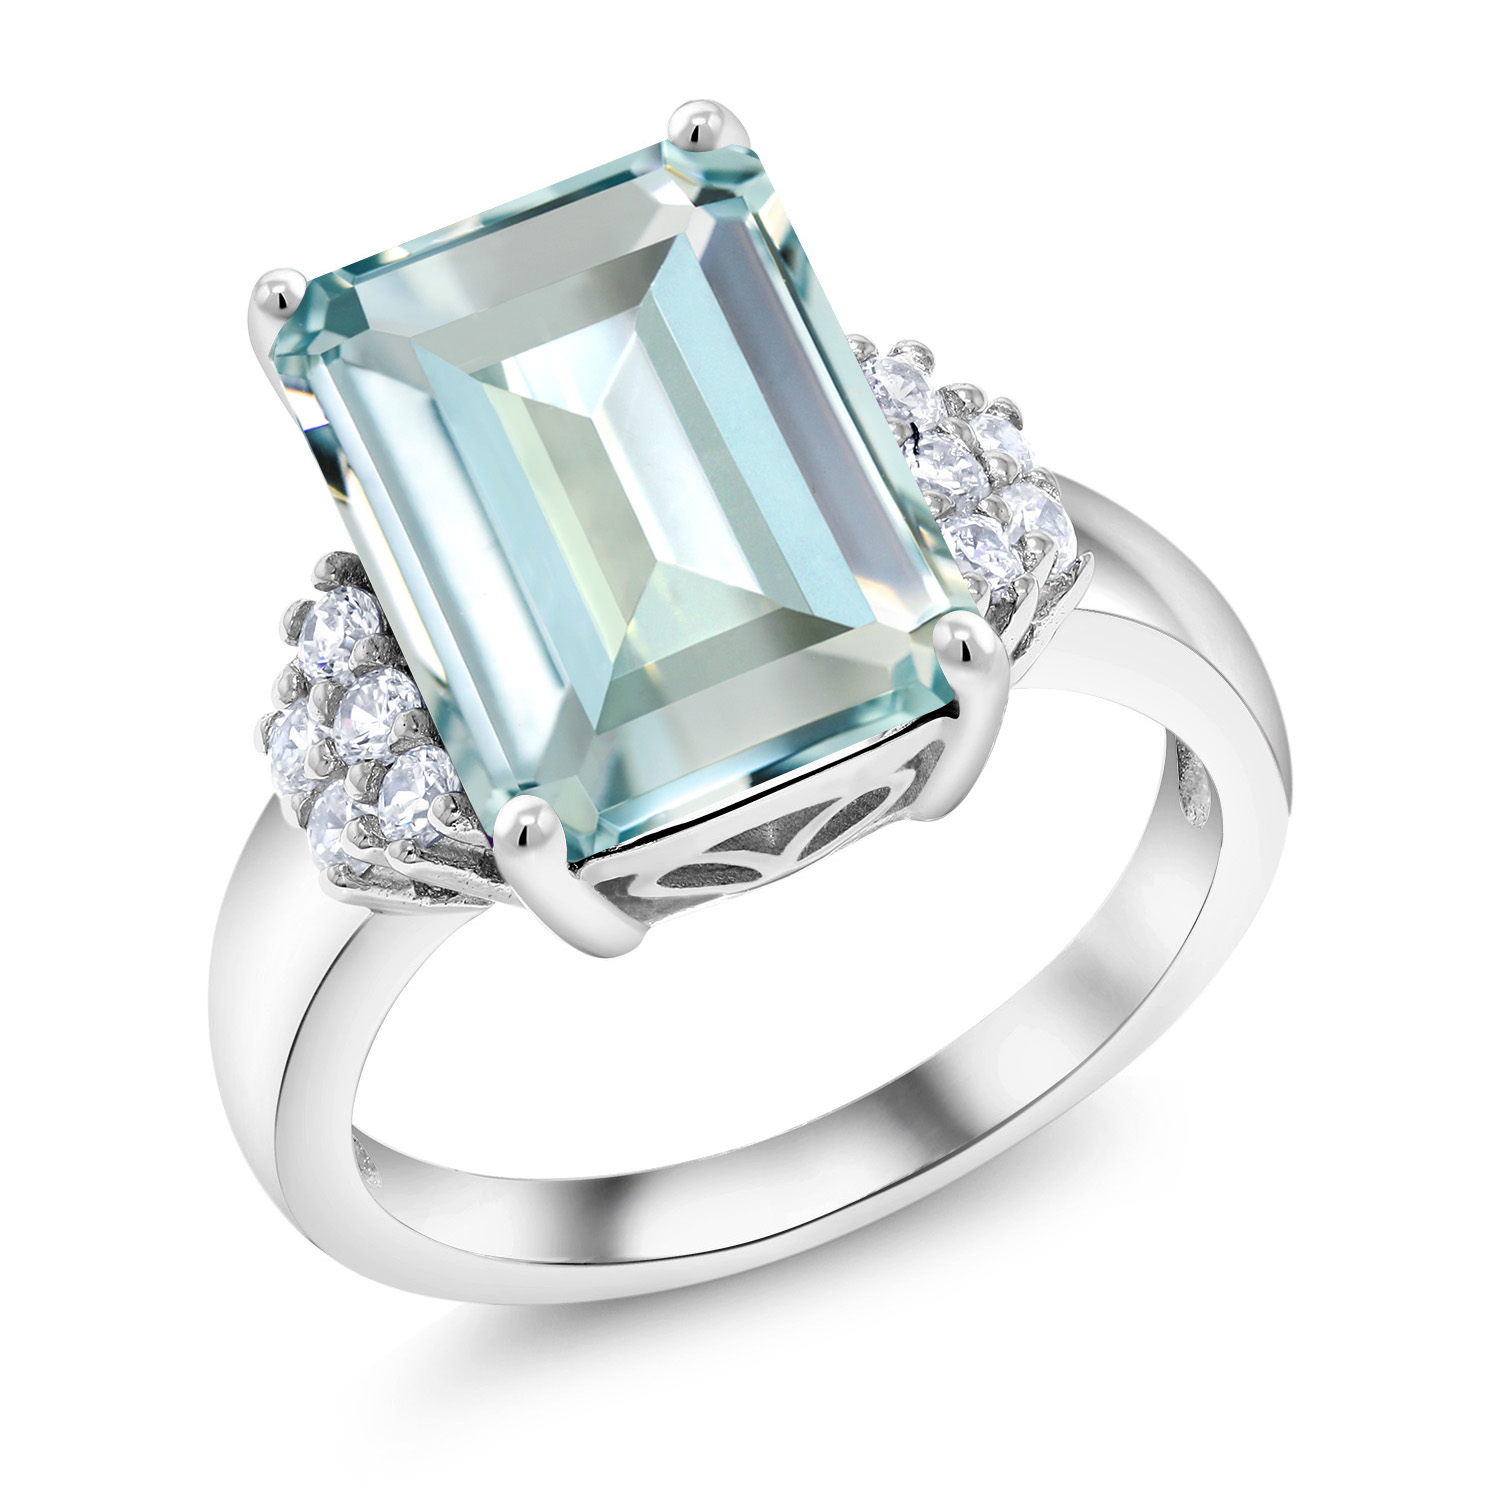 6.94 Ct Emerald Cut Sky Blue Simulated Aquamarine 925 Sterling Silver Ring